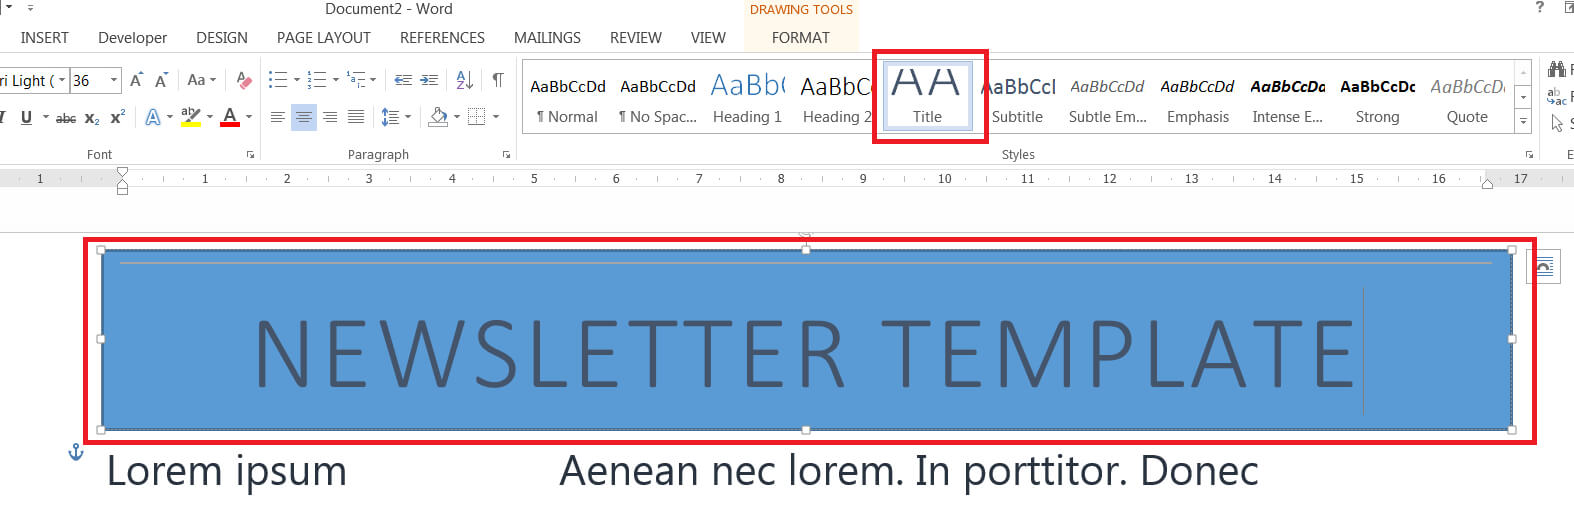 How To Easily Create A Newsletter Template In Microsoft Word For How To Insert Template In Word